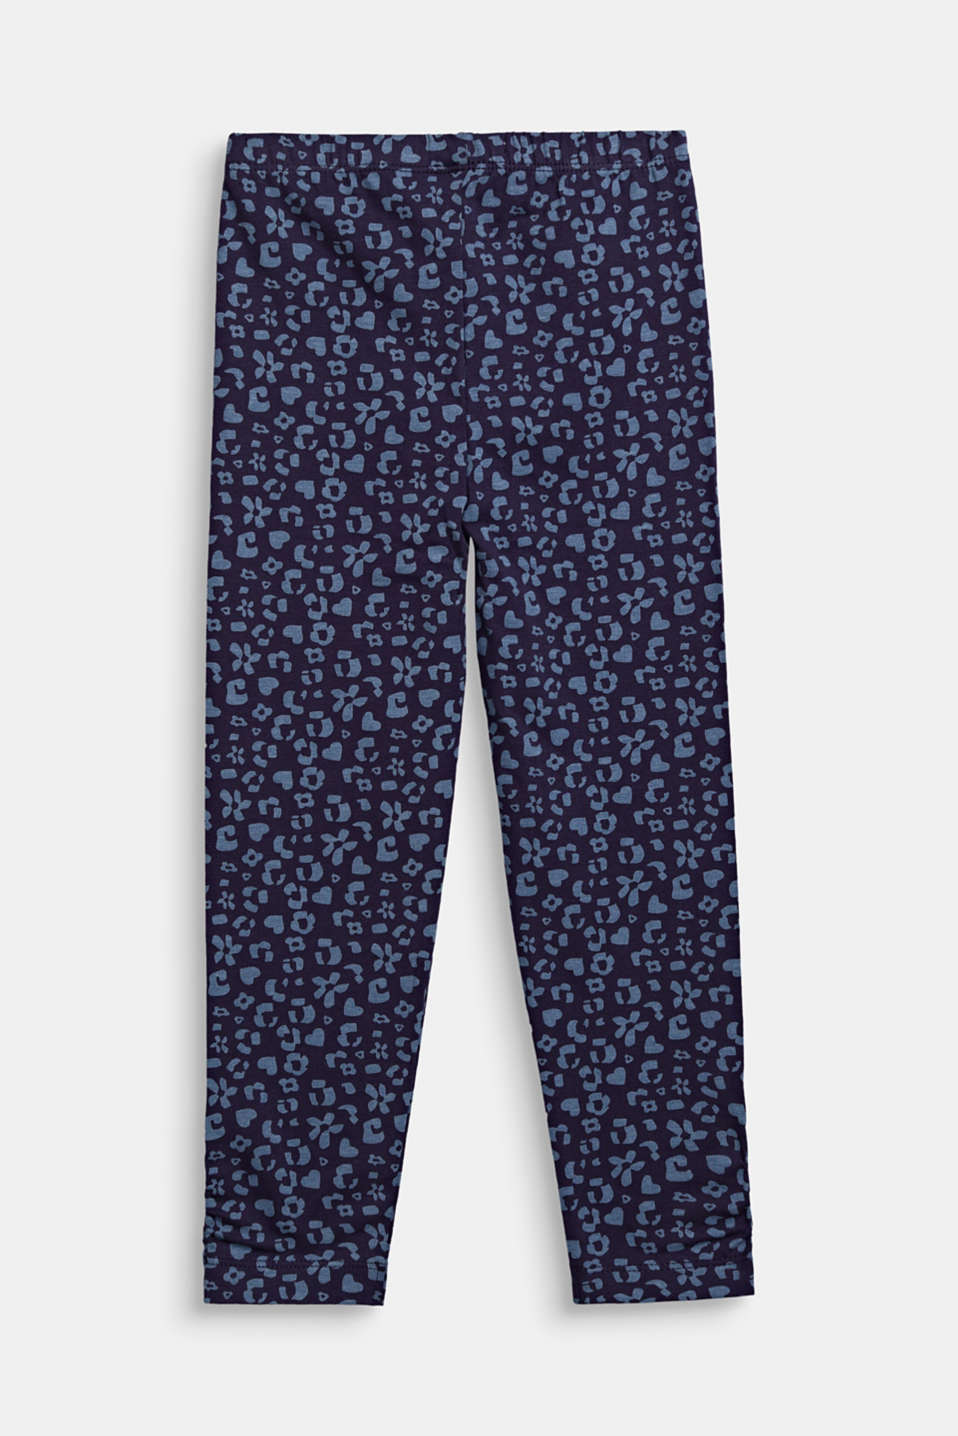 Leggings with a printed pattern, NIGHT BLUE, detail image number 1